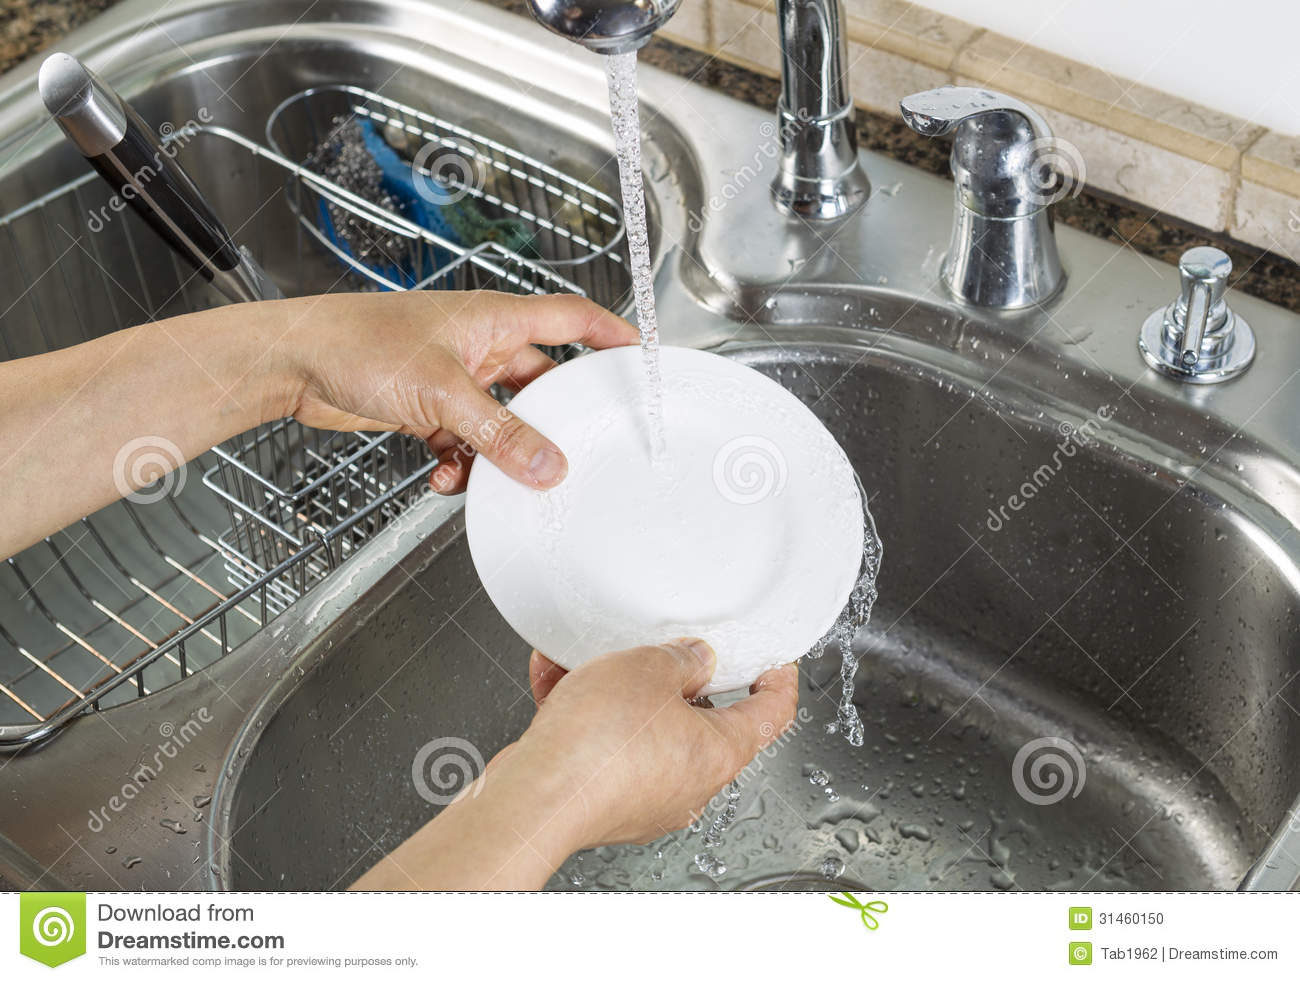 Woman Hands Washing Dinner Plate In Kitchen Sink Stock